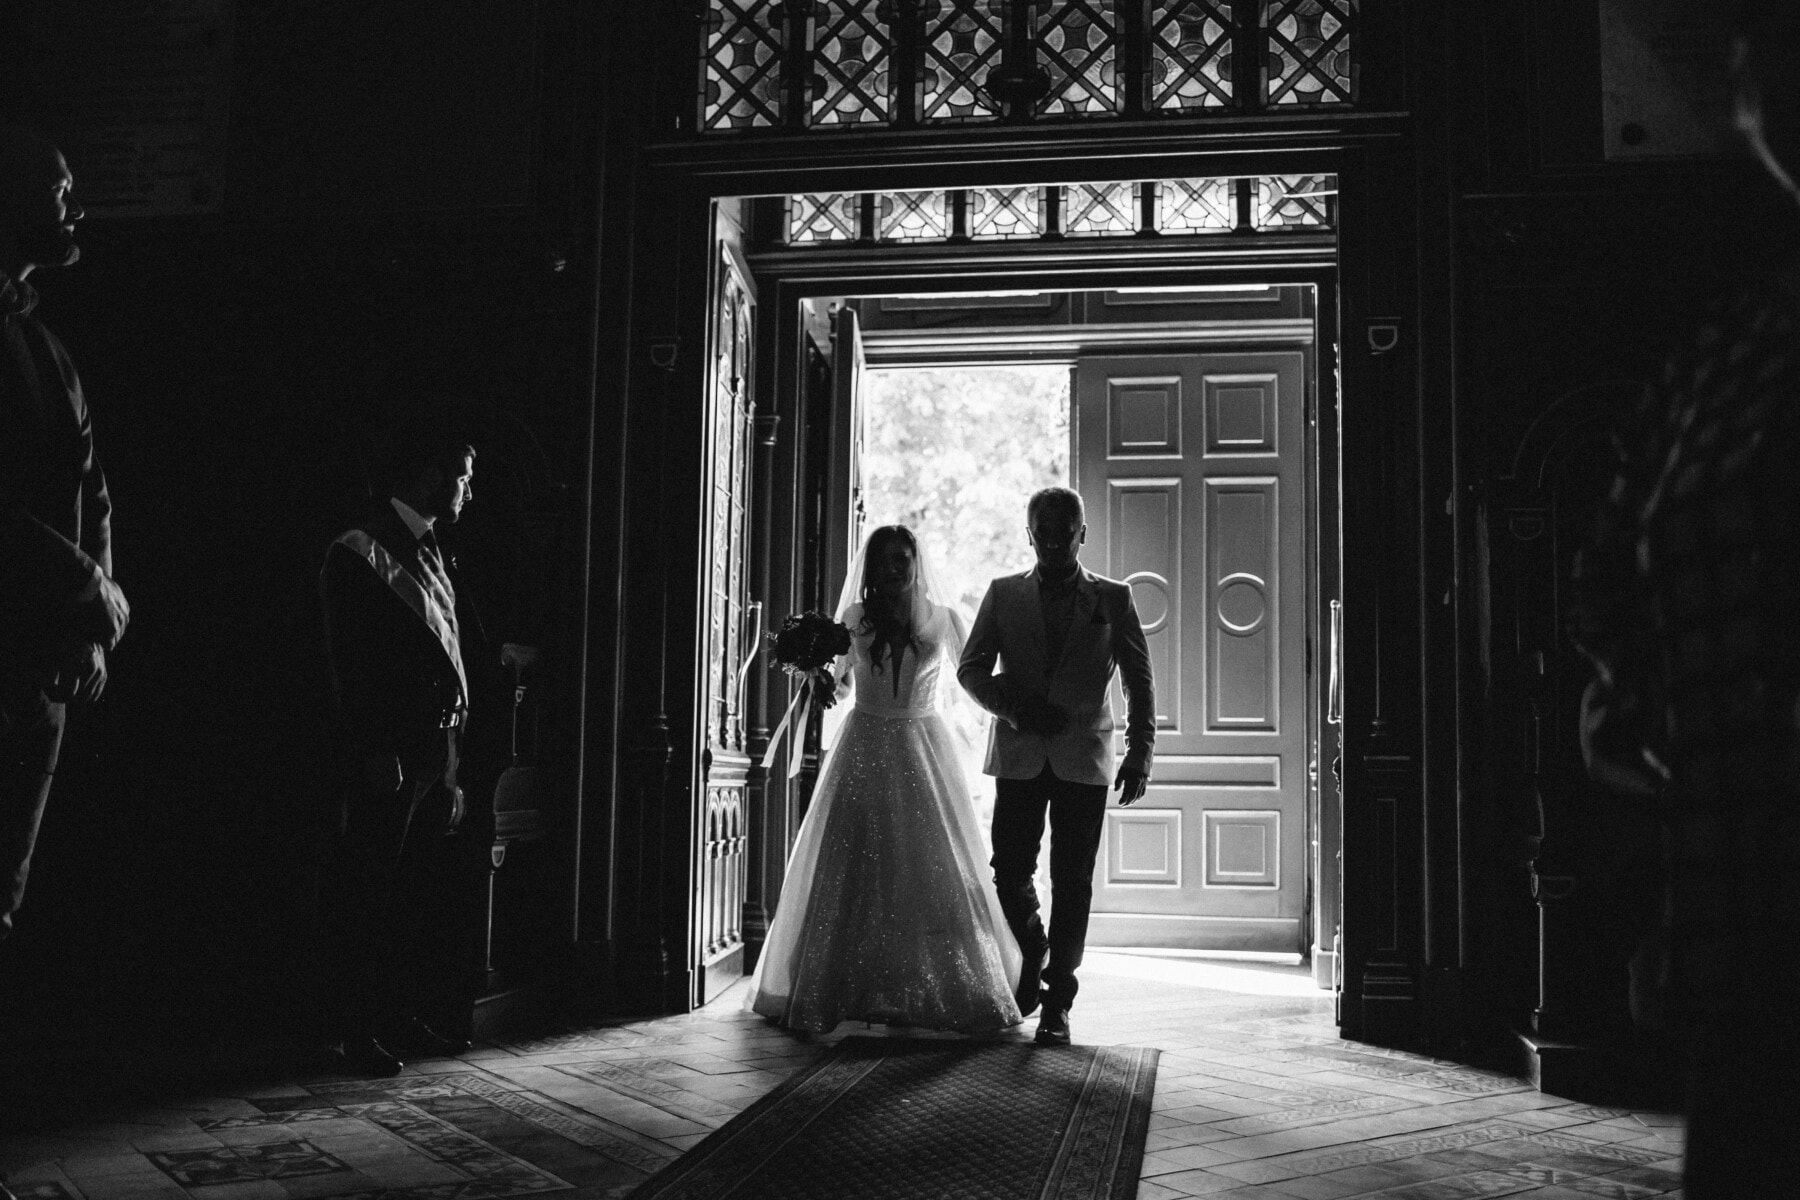 father, bride, wedding, walkway, church, ceremony, people, groom, monochrome, doorway